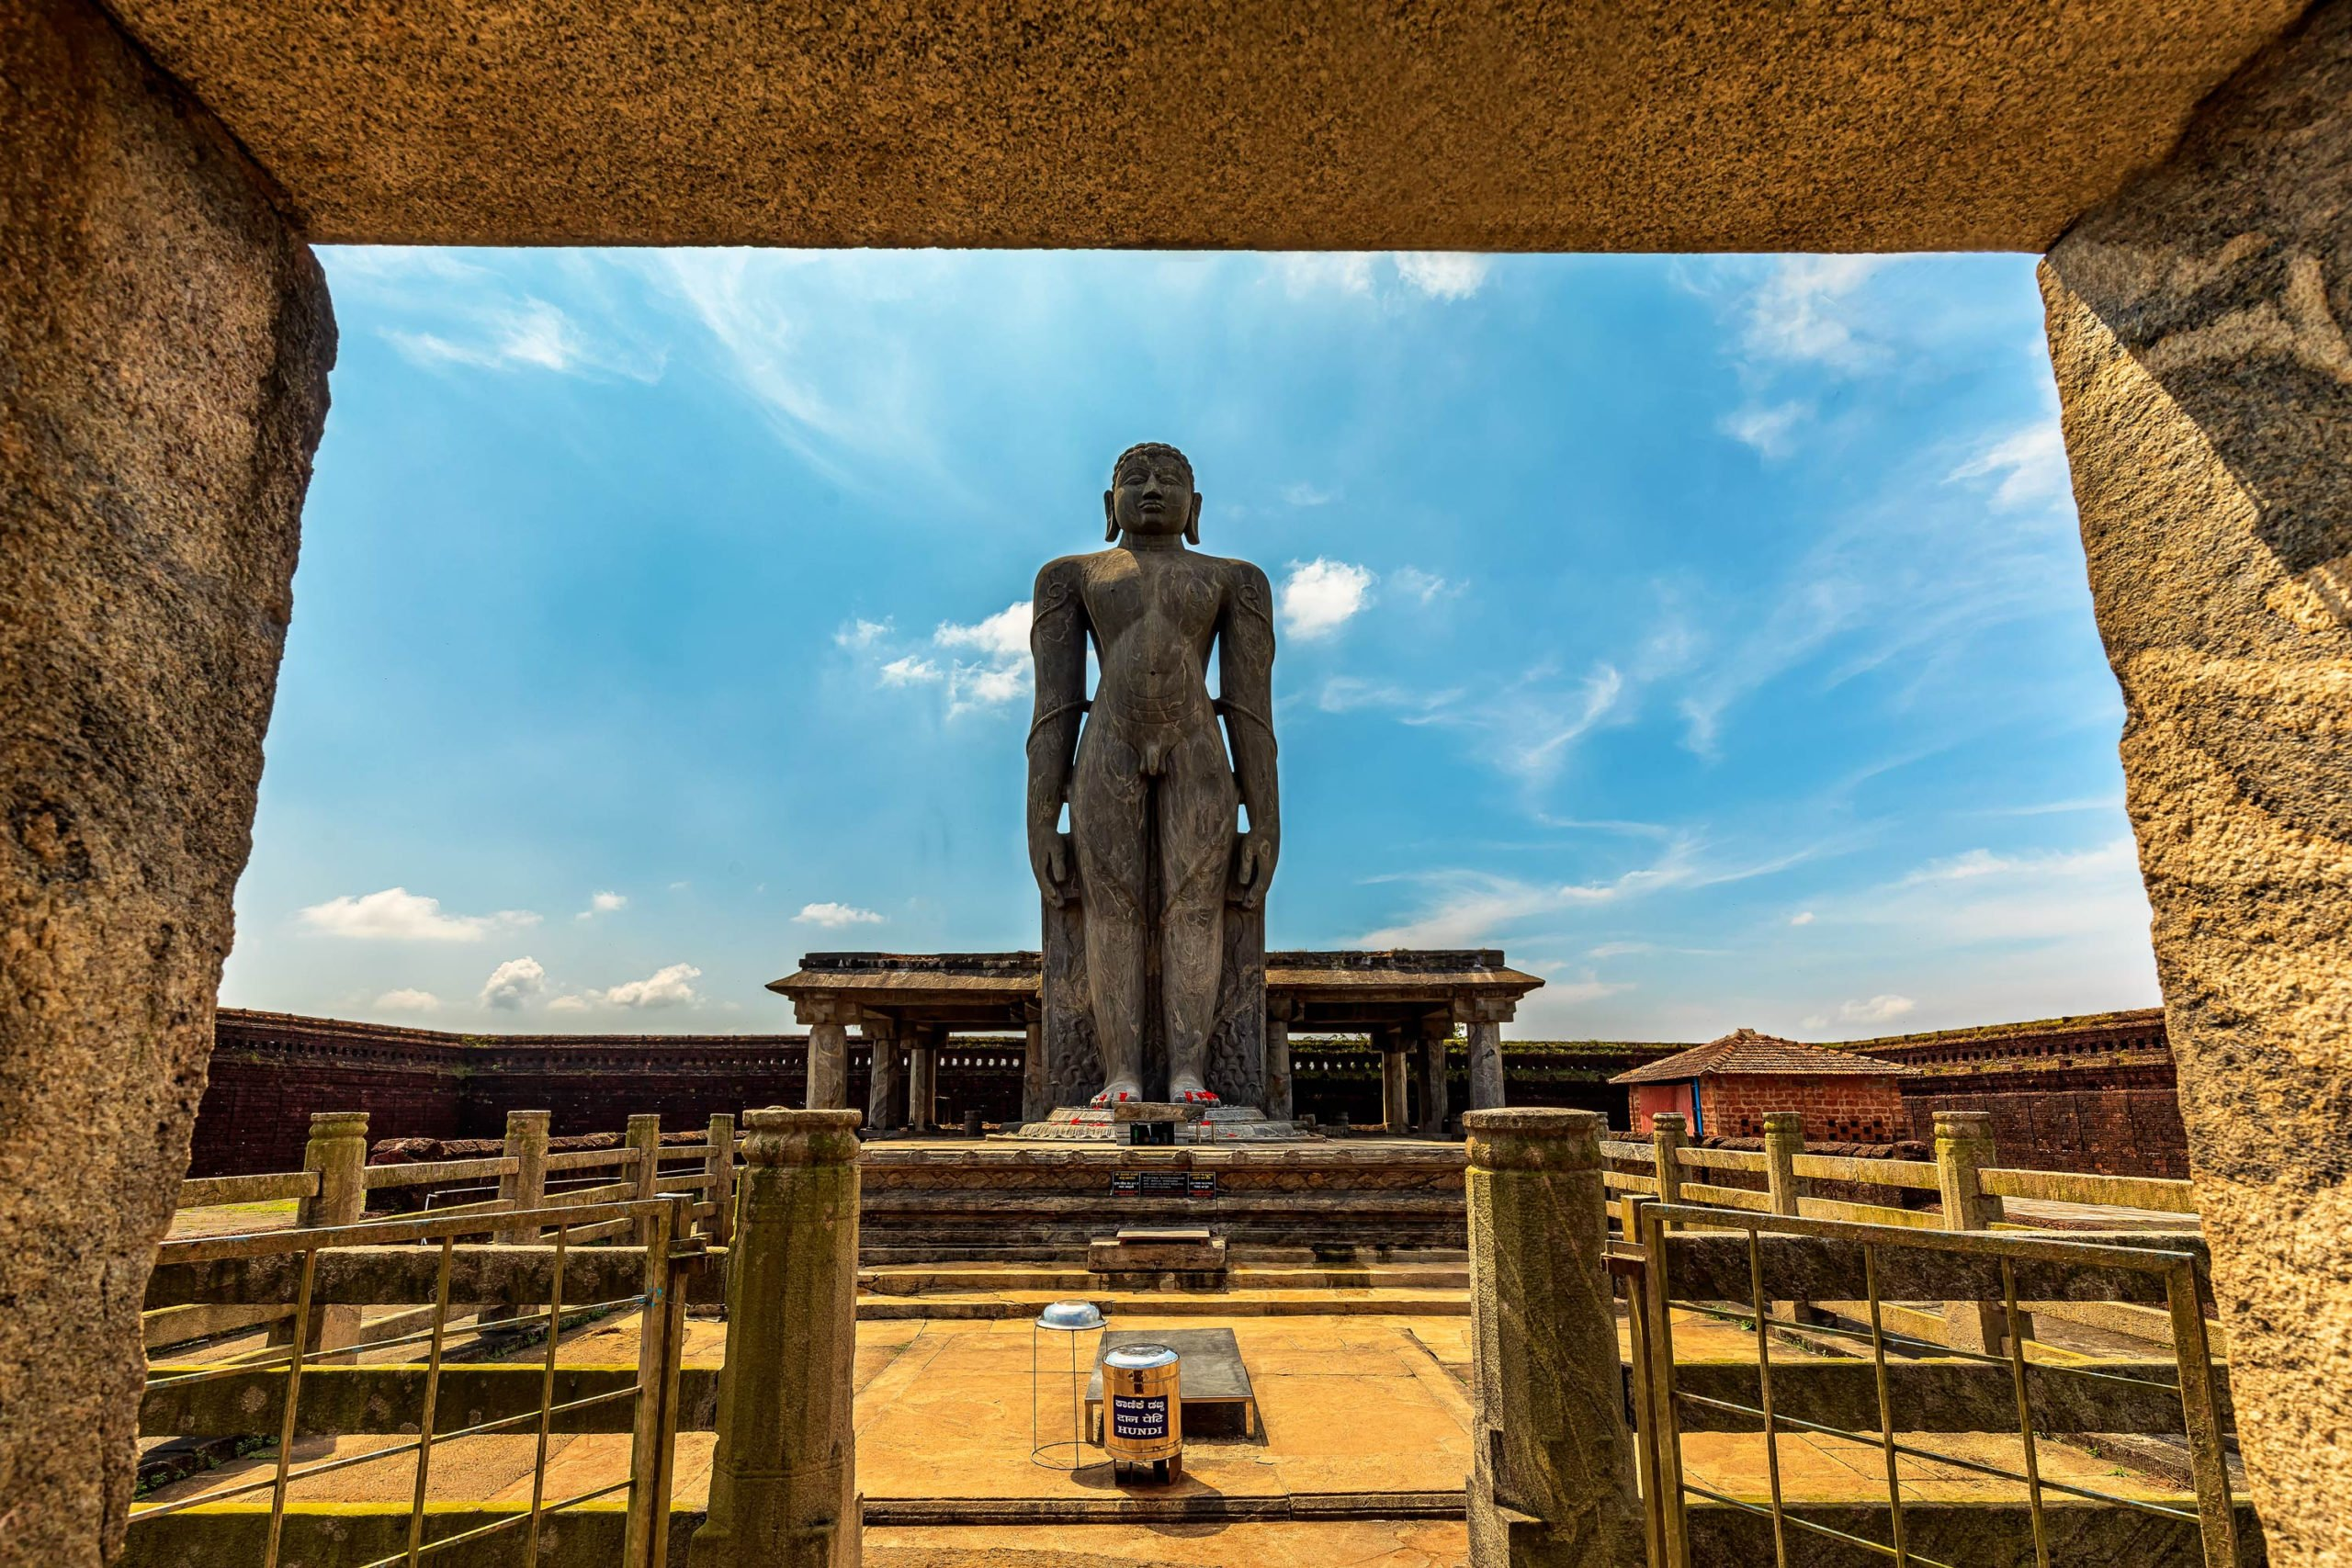 Learn About The Key Tenets Of The Ancient Jain Religion With Its Emphasis On Compassion For All Living Things In Our Tour To The World's Tallest Monolithic Statue At Shravanabelagola